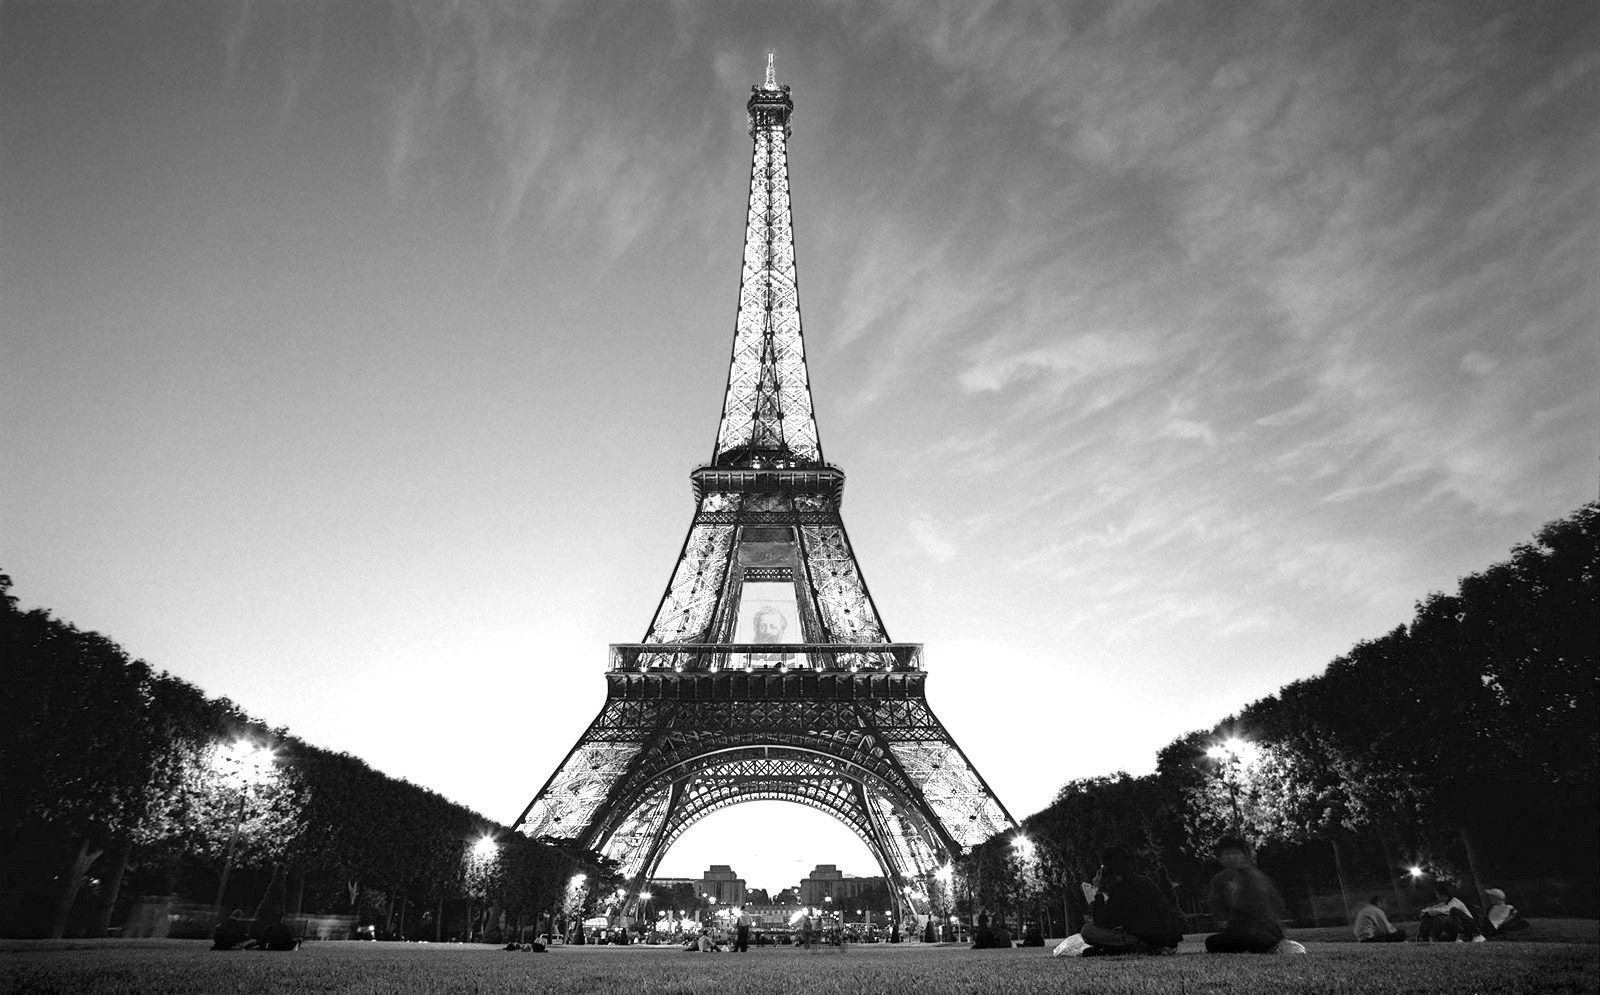 Eiffel Tower Paris Photos Part 2 Eiffel Tower Paris Black And White Eiffel